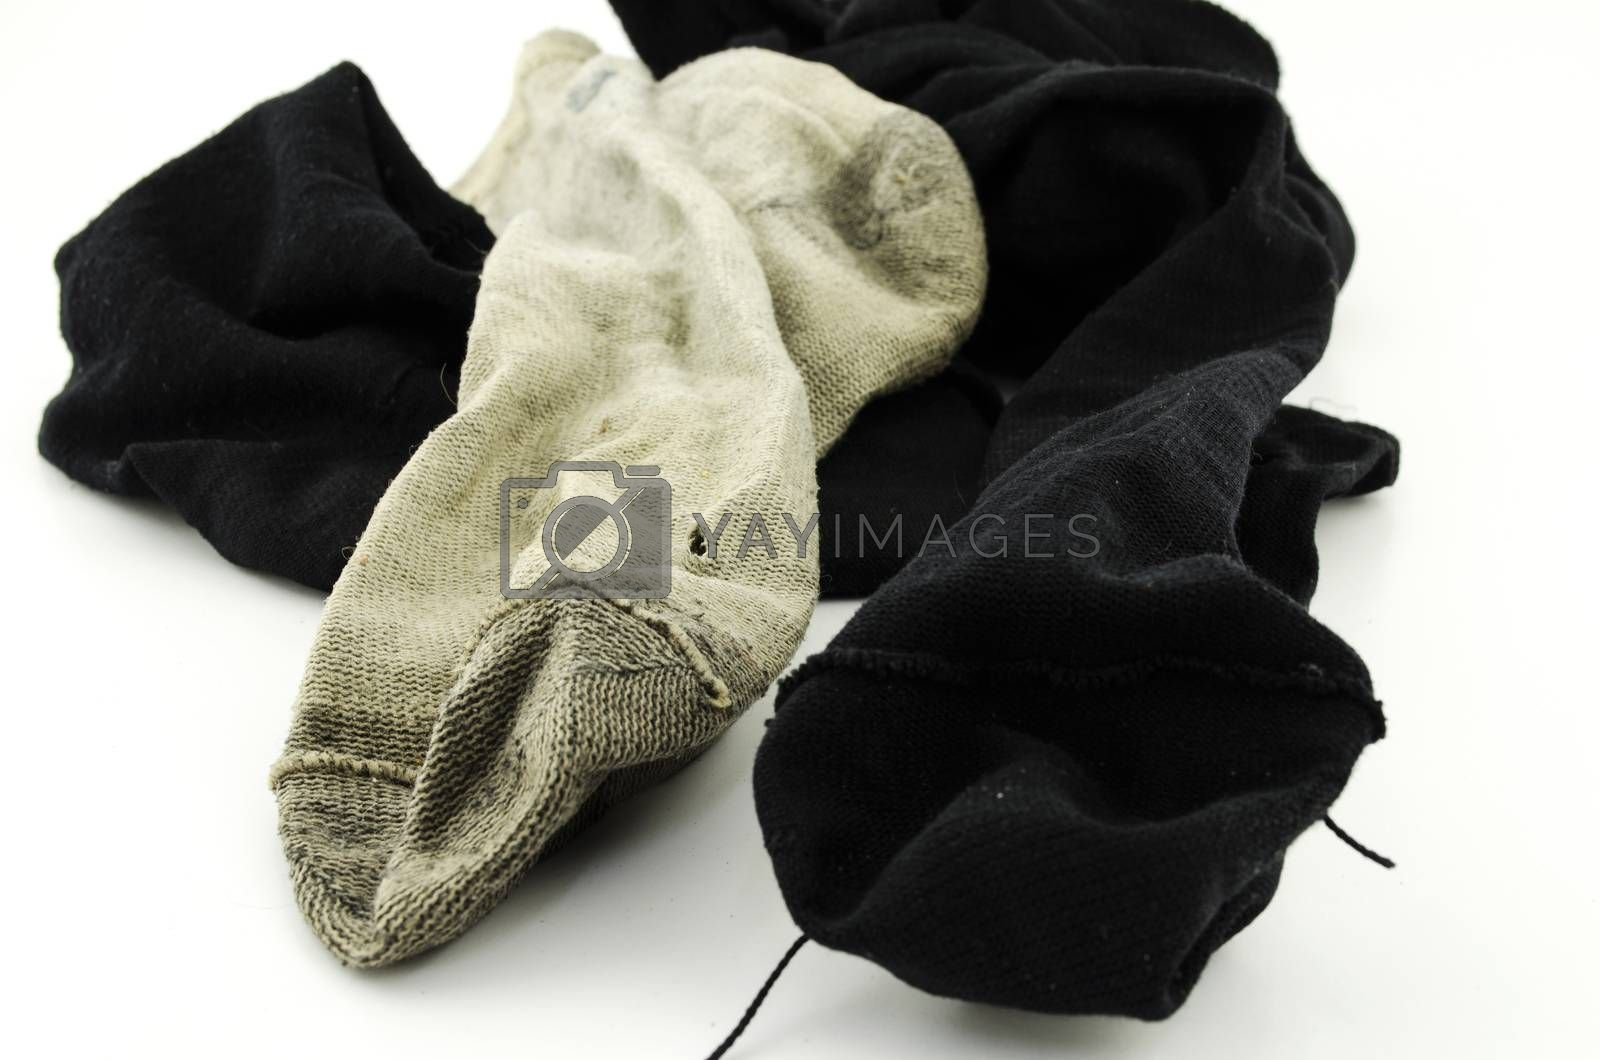 used dirty sock isolated on white background